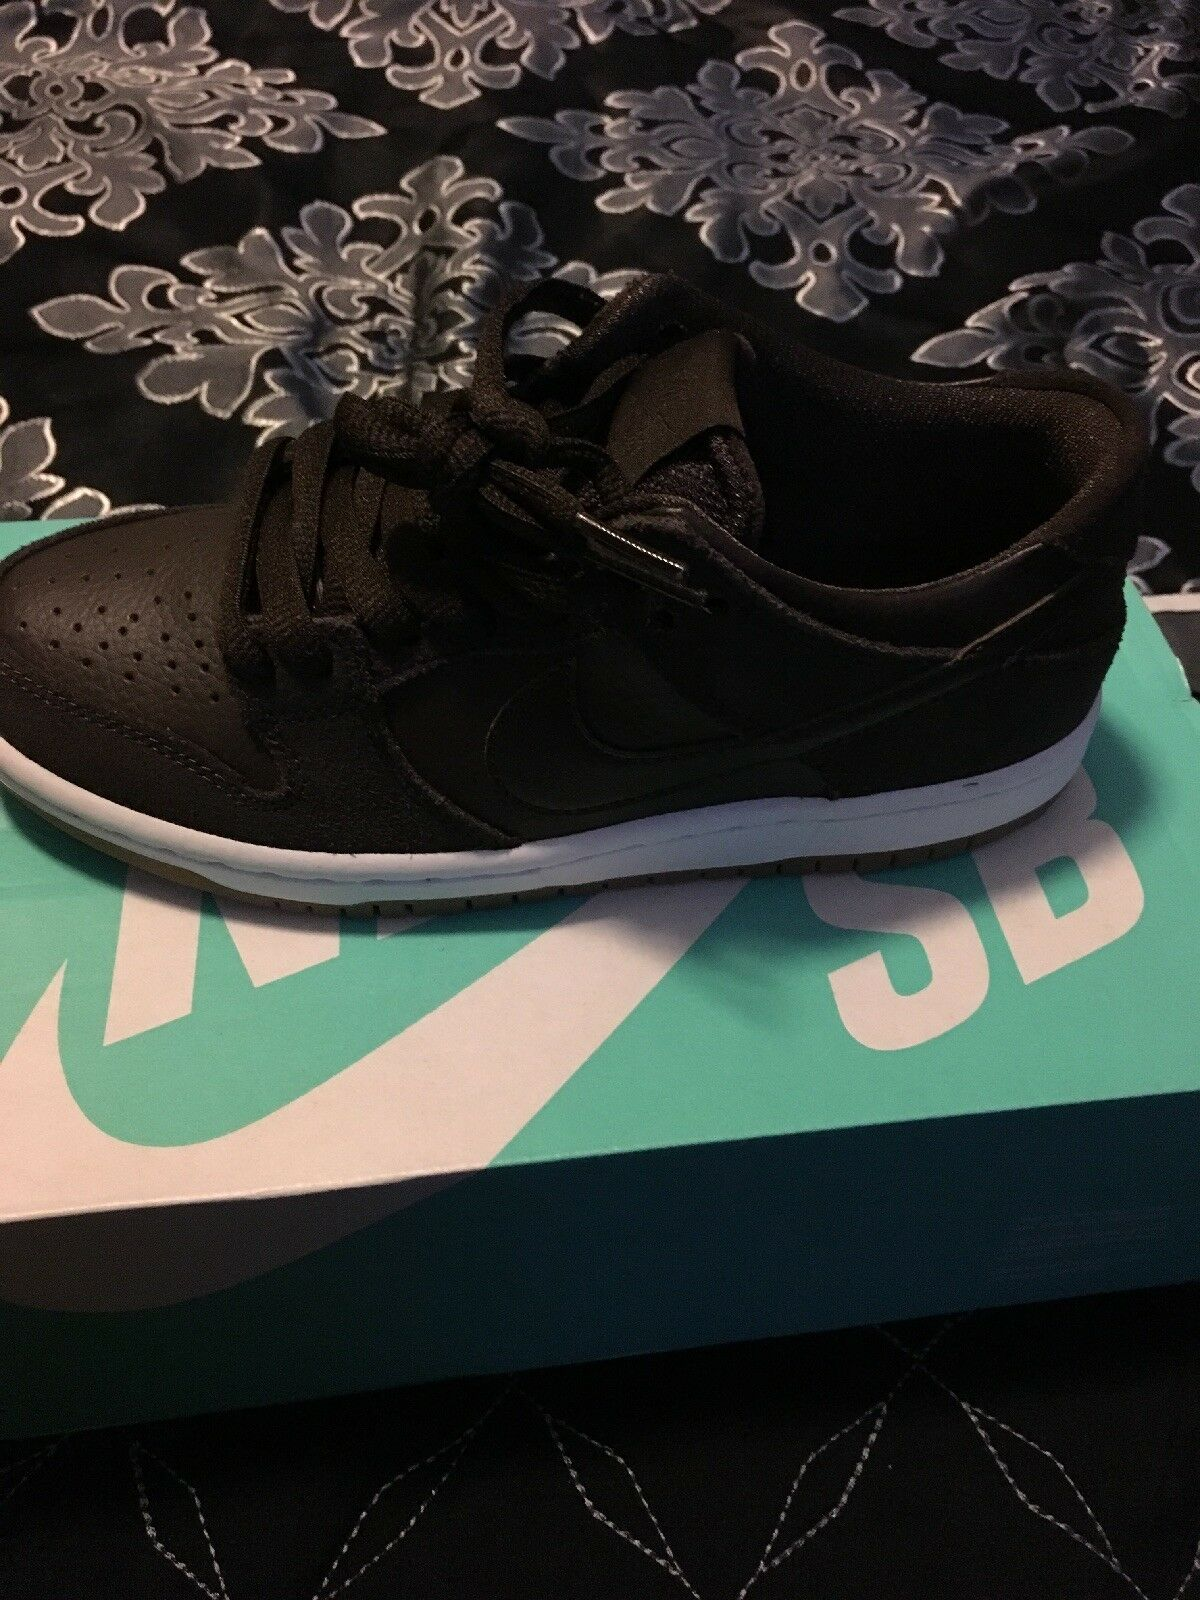 Nike Dunk Low Pro IW sb Baroque Brown Size 4